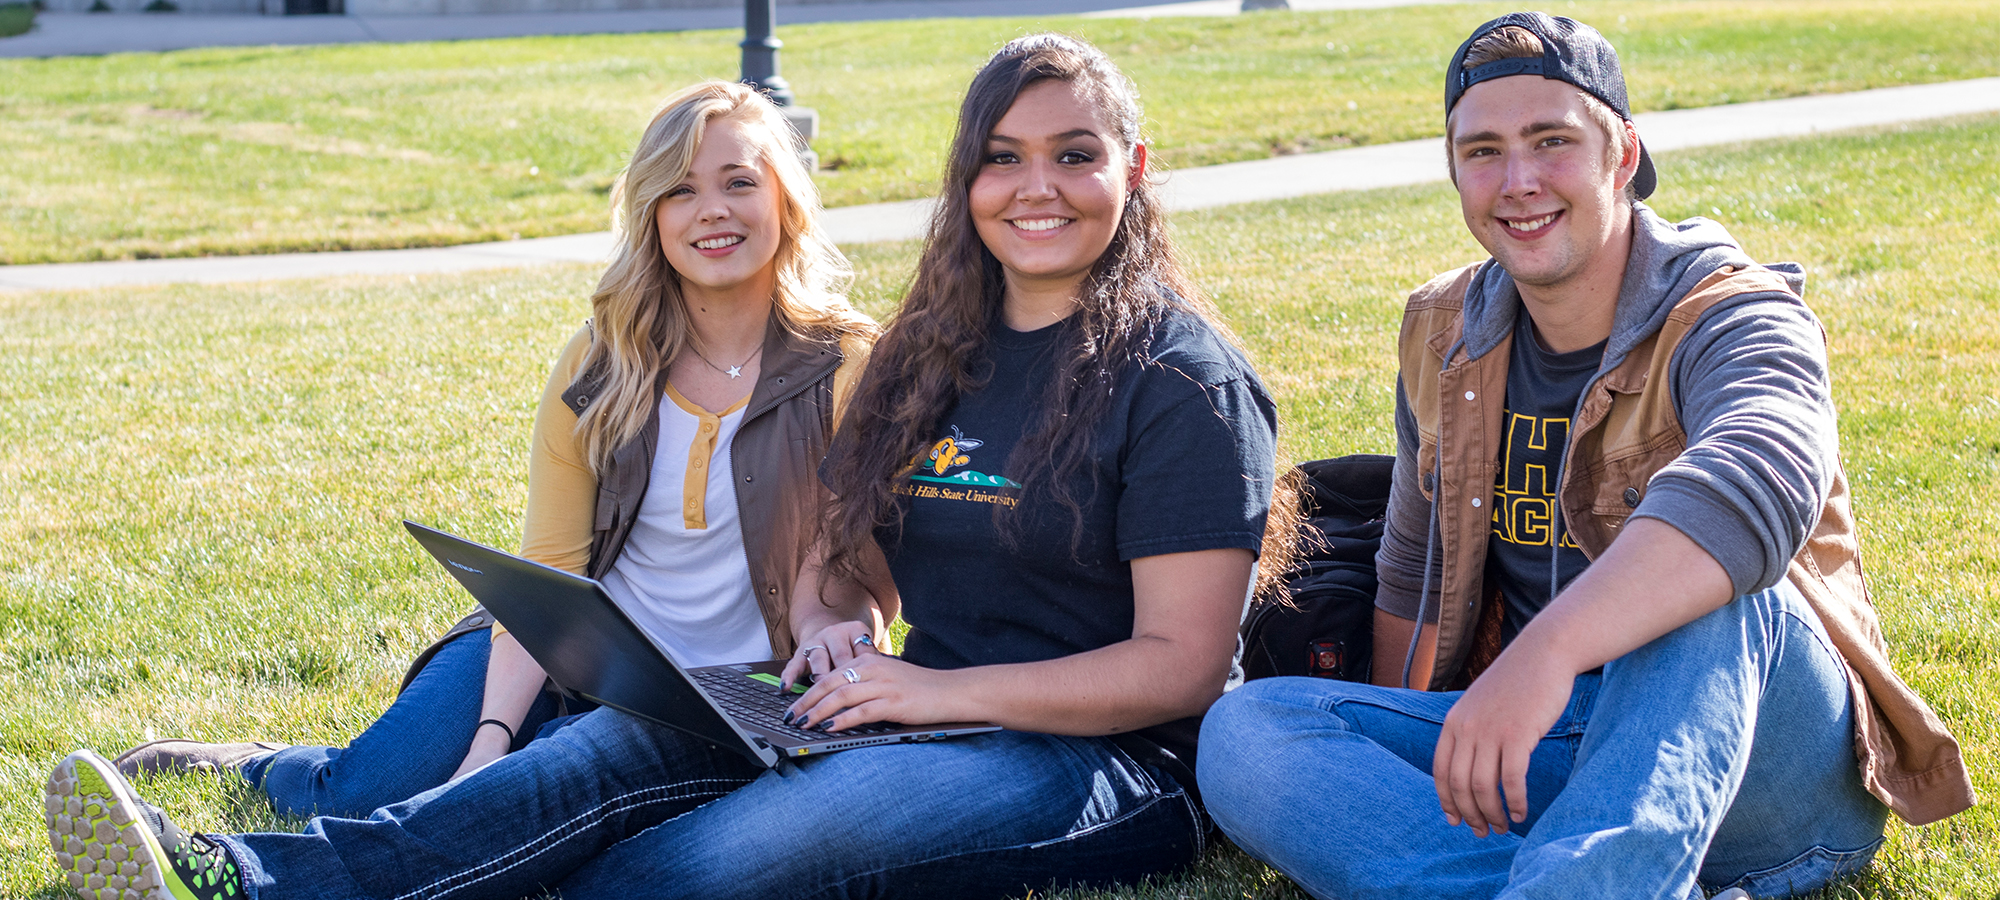 Attend a New Registration Day at BHSU in Spearfish.